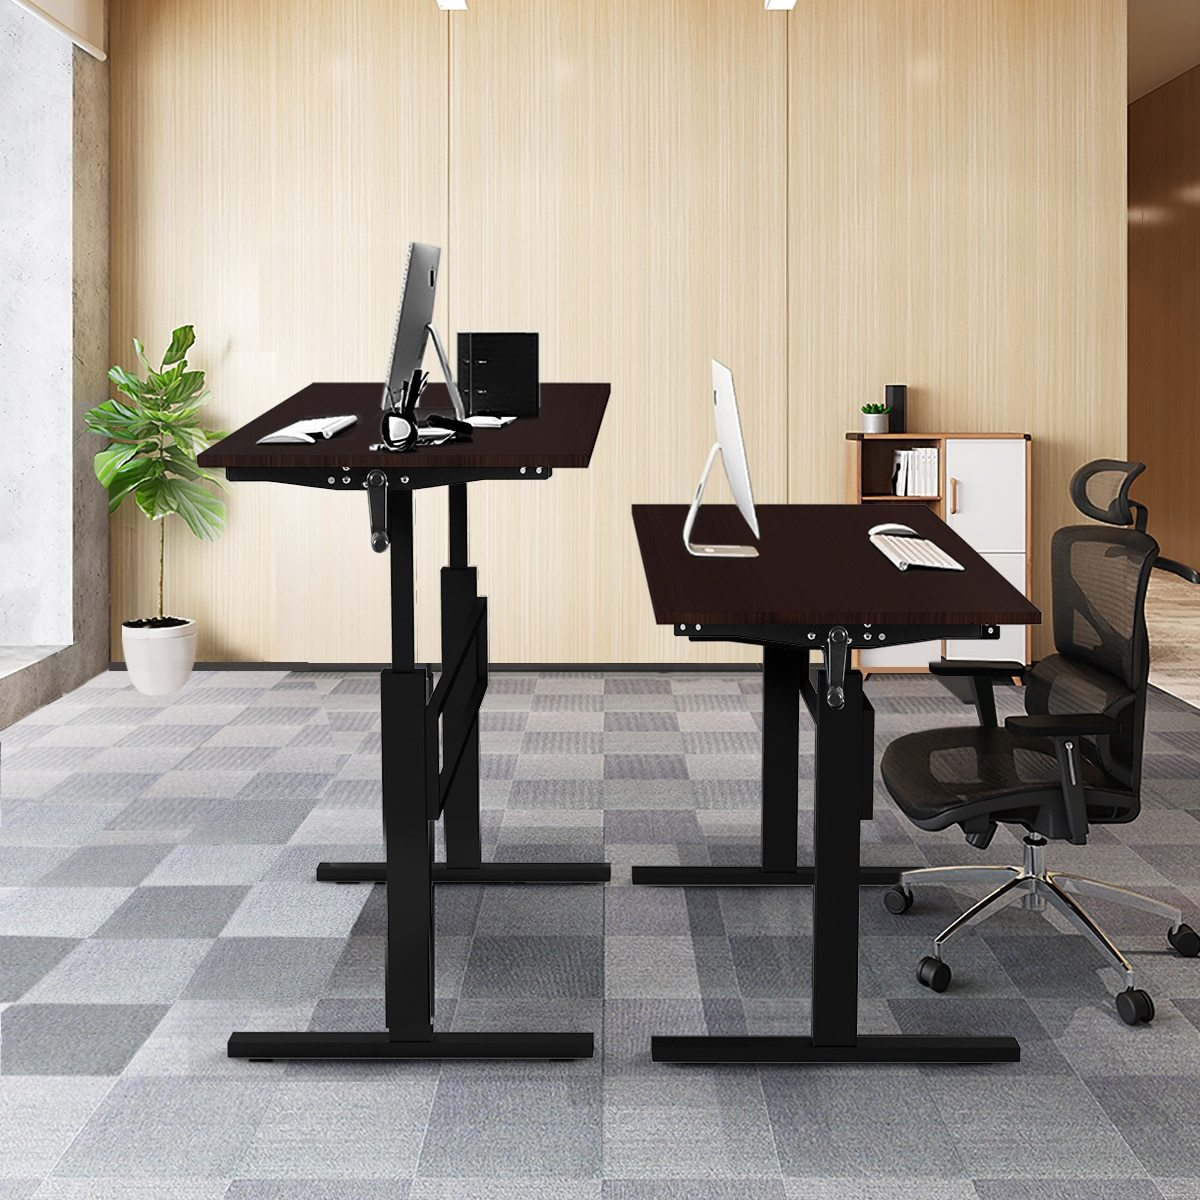 "Large Spacious Height Adjustable Standing Computer Desk 47"" - Daniels Store"